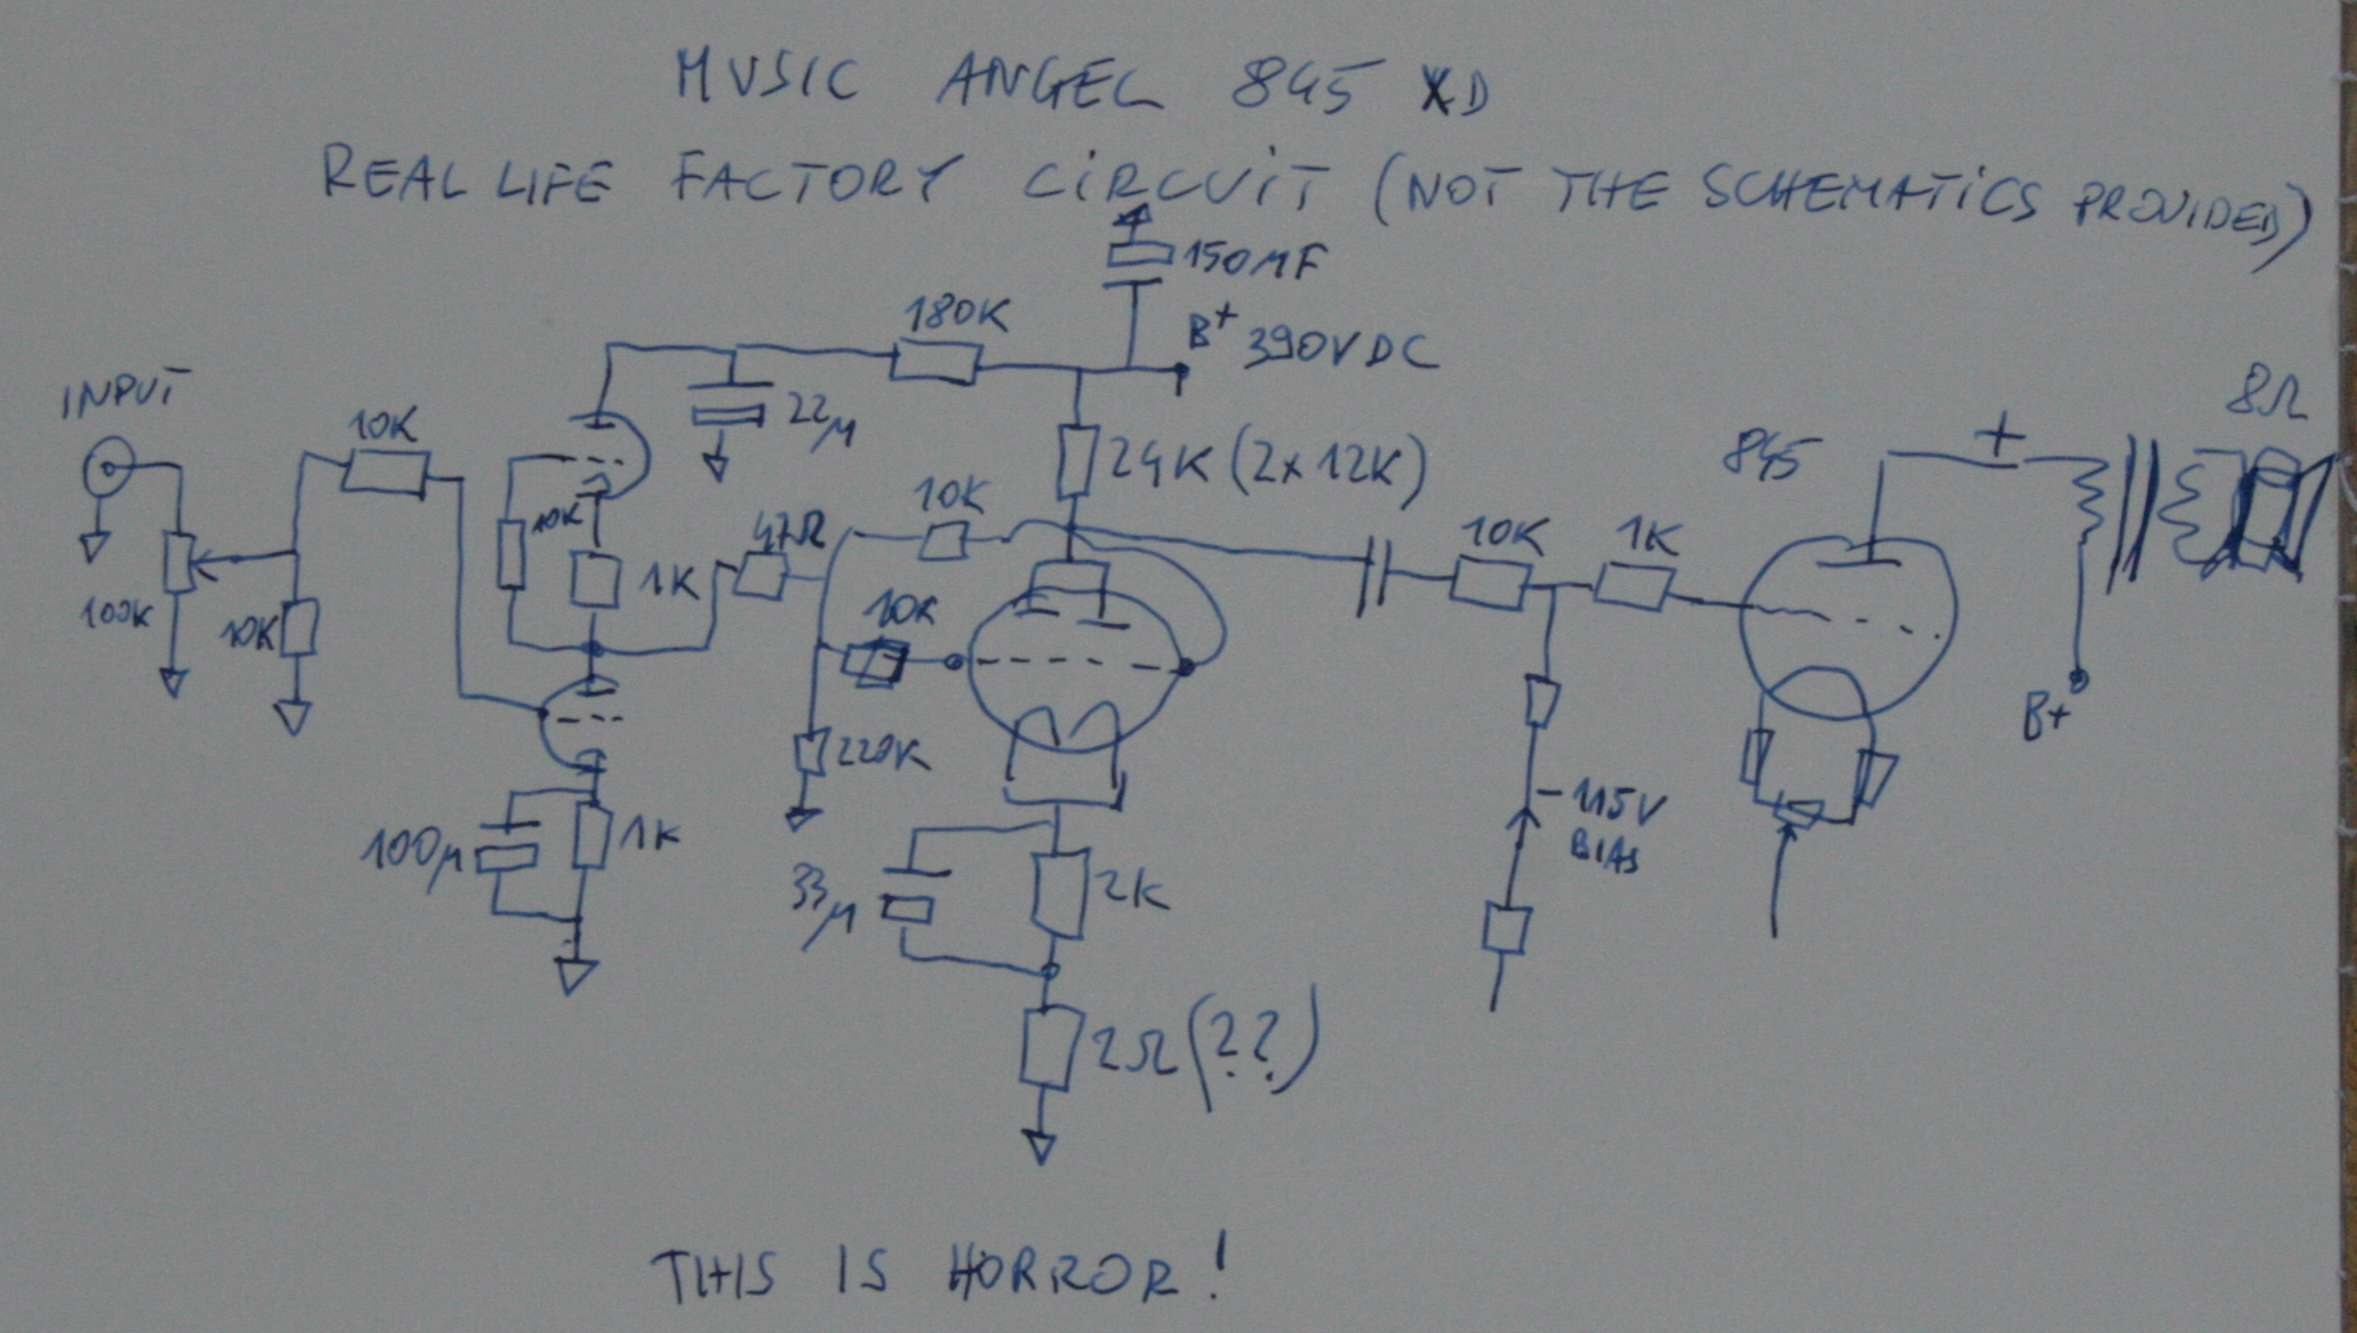 Set Triode Amplifier Music Angel 845 Hong Kong Audio Power Schematics 4w 8 Watt Amp Oryginal Real Life Drawing